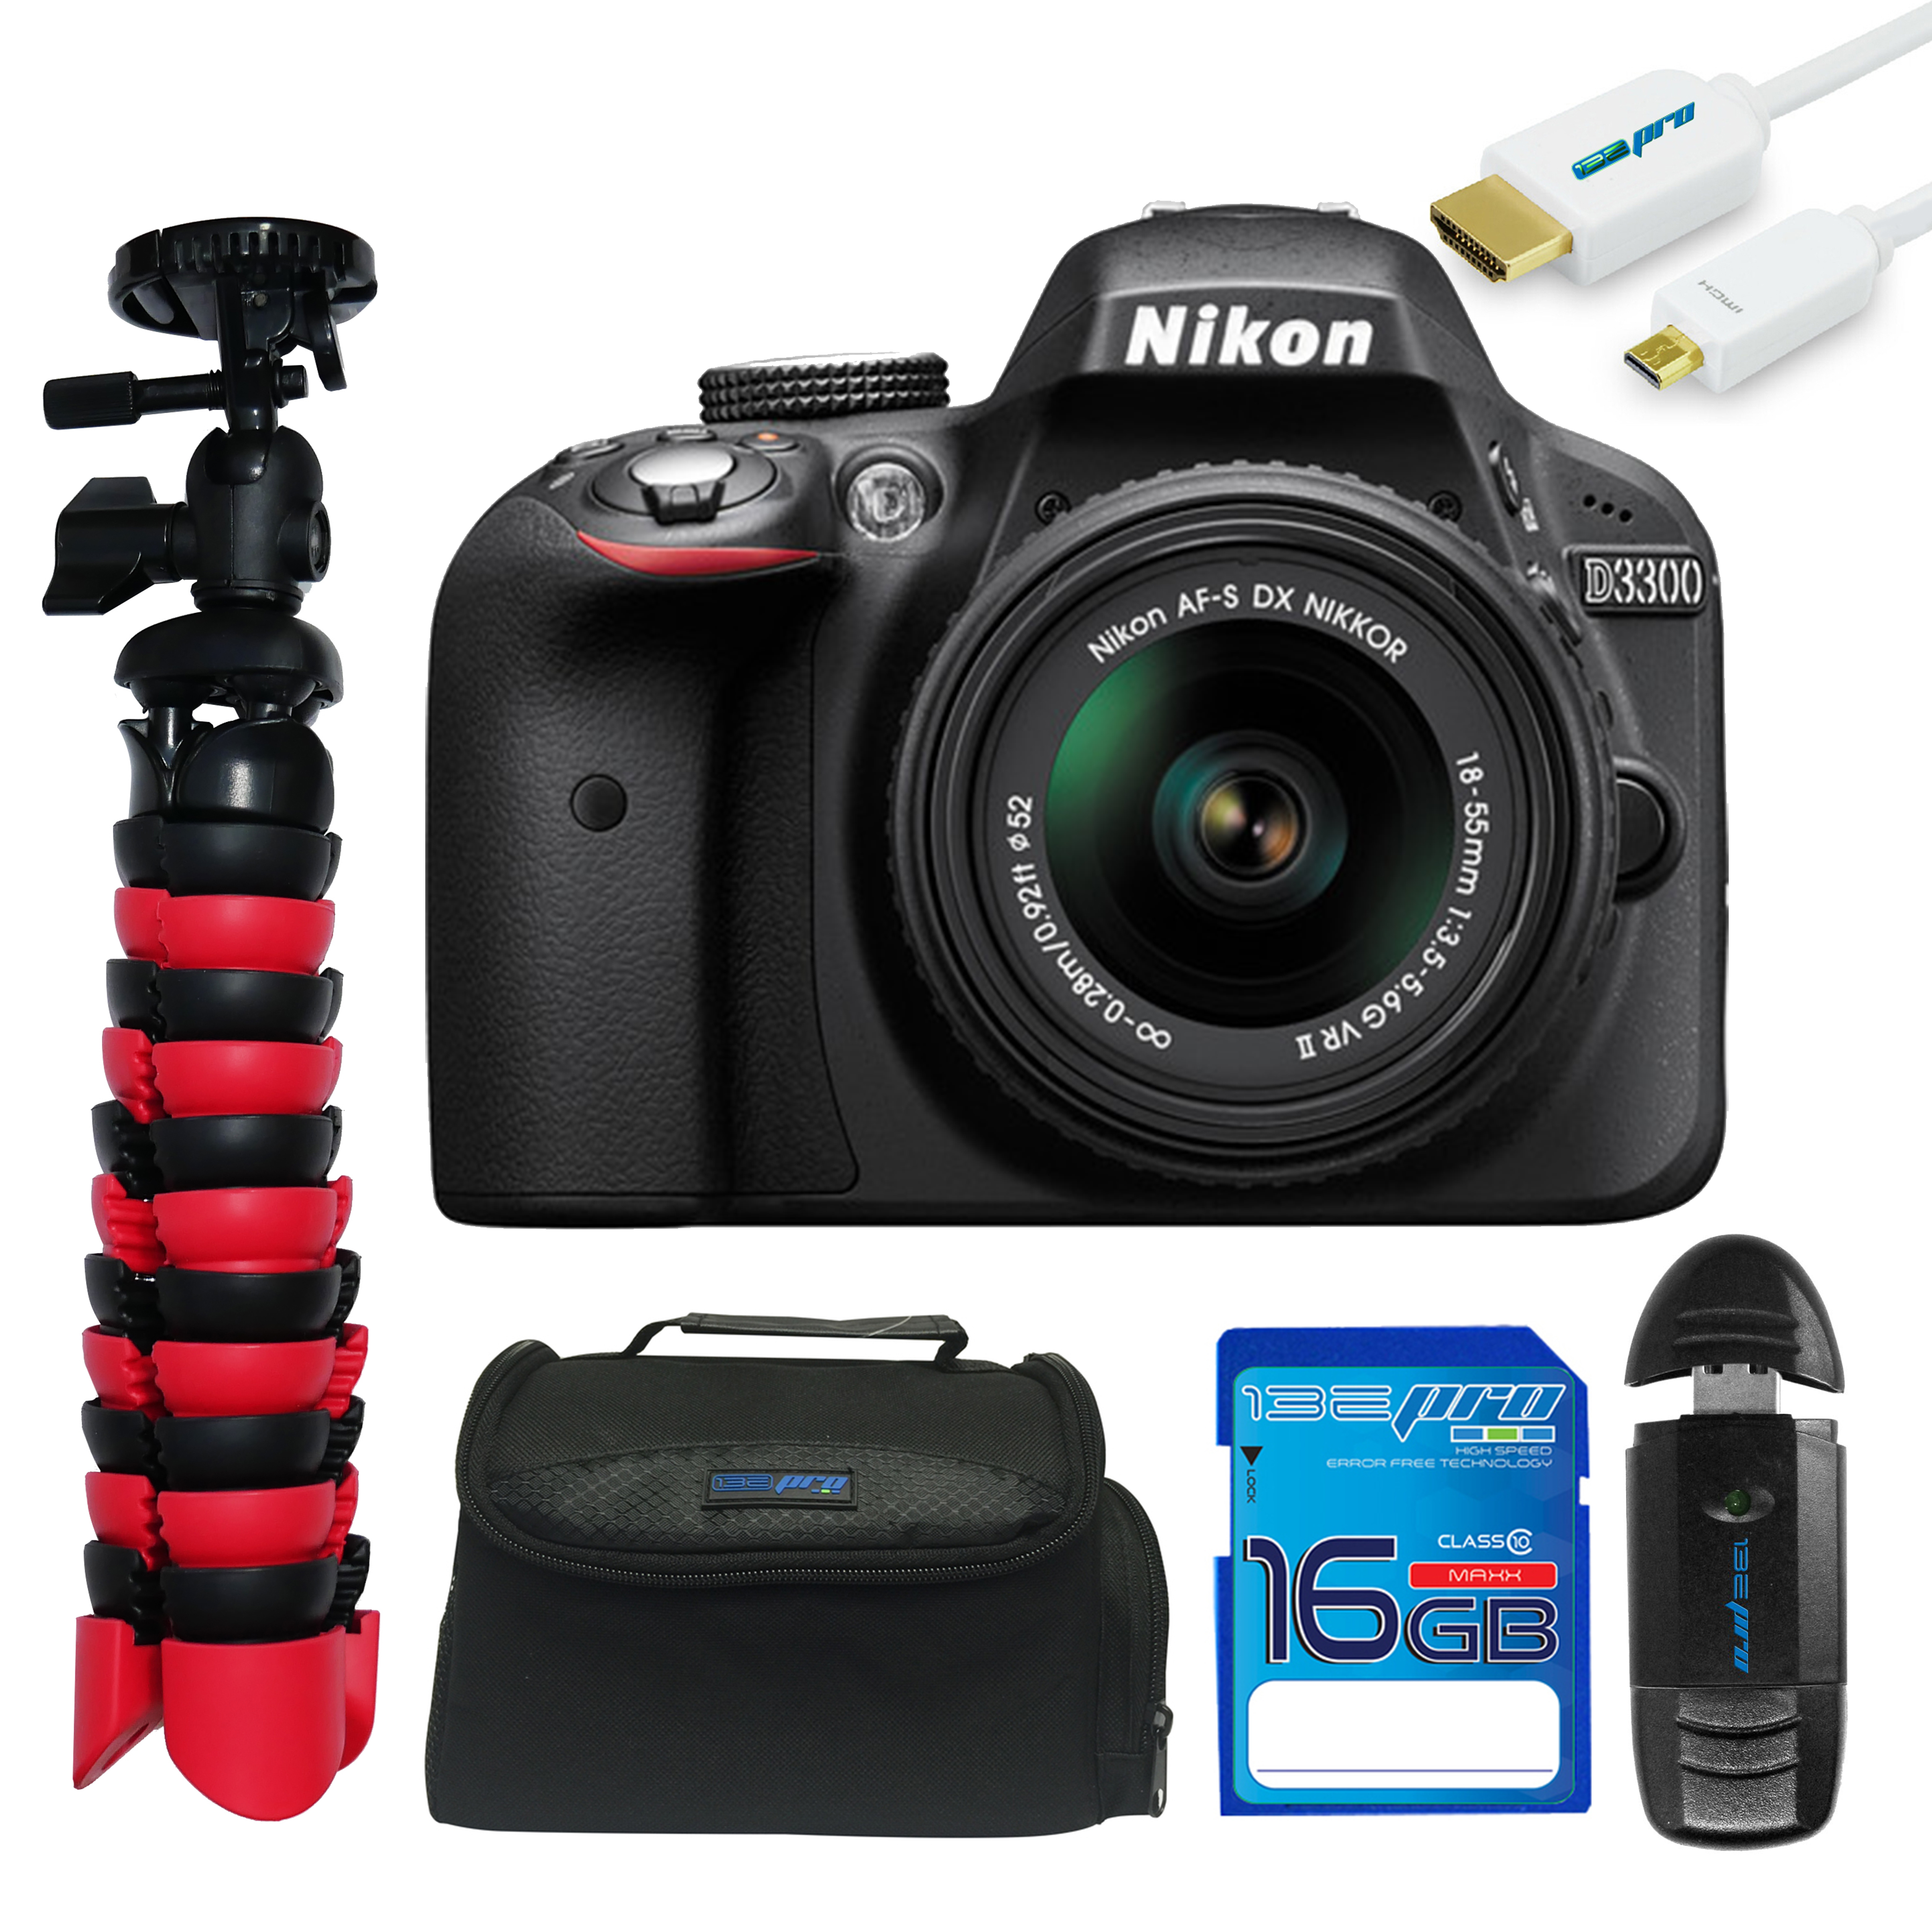 Nikon D3300 DSLR Camera with 18-55mm Lens + Pixi Essentials Kit